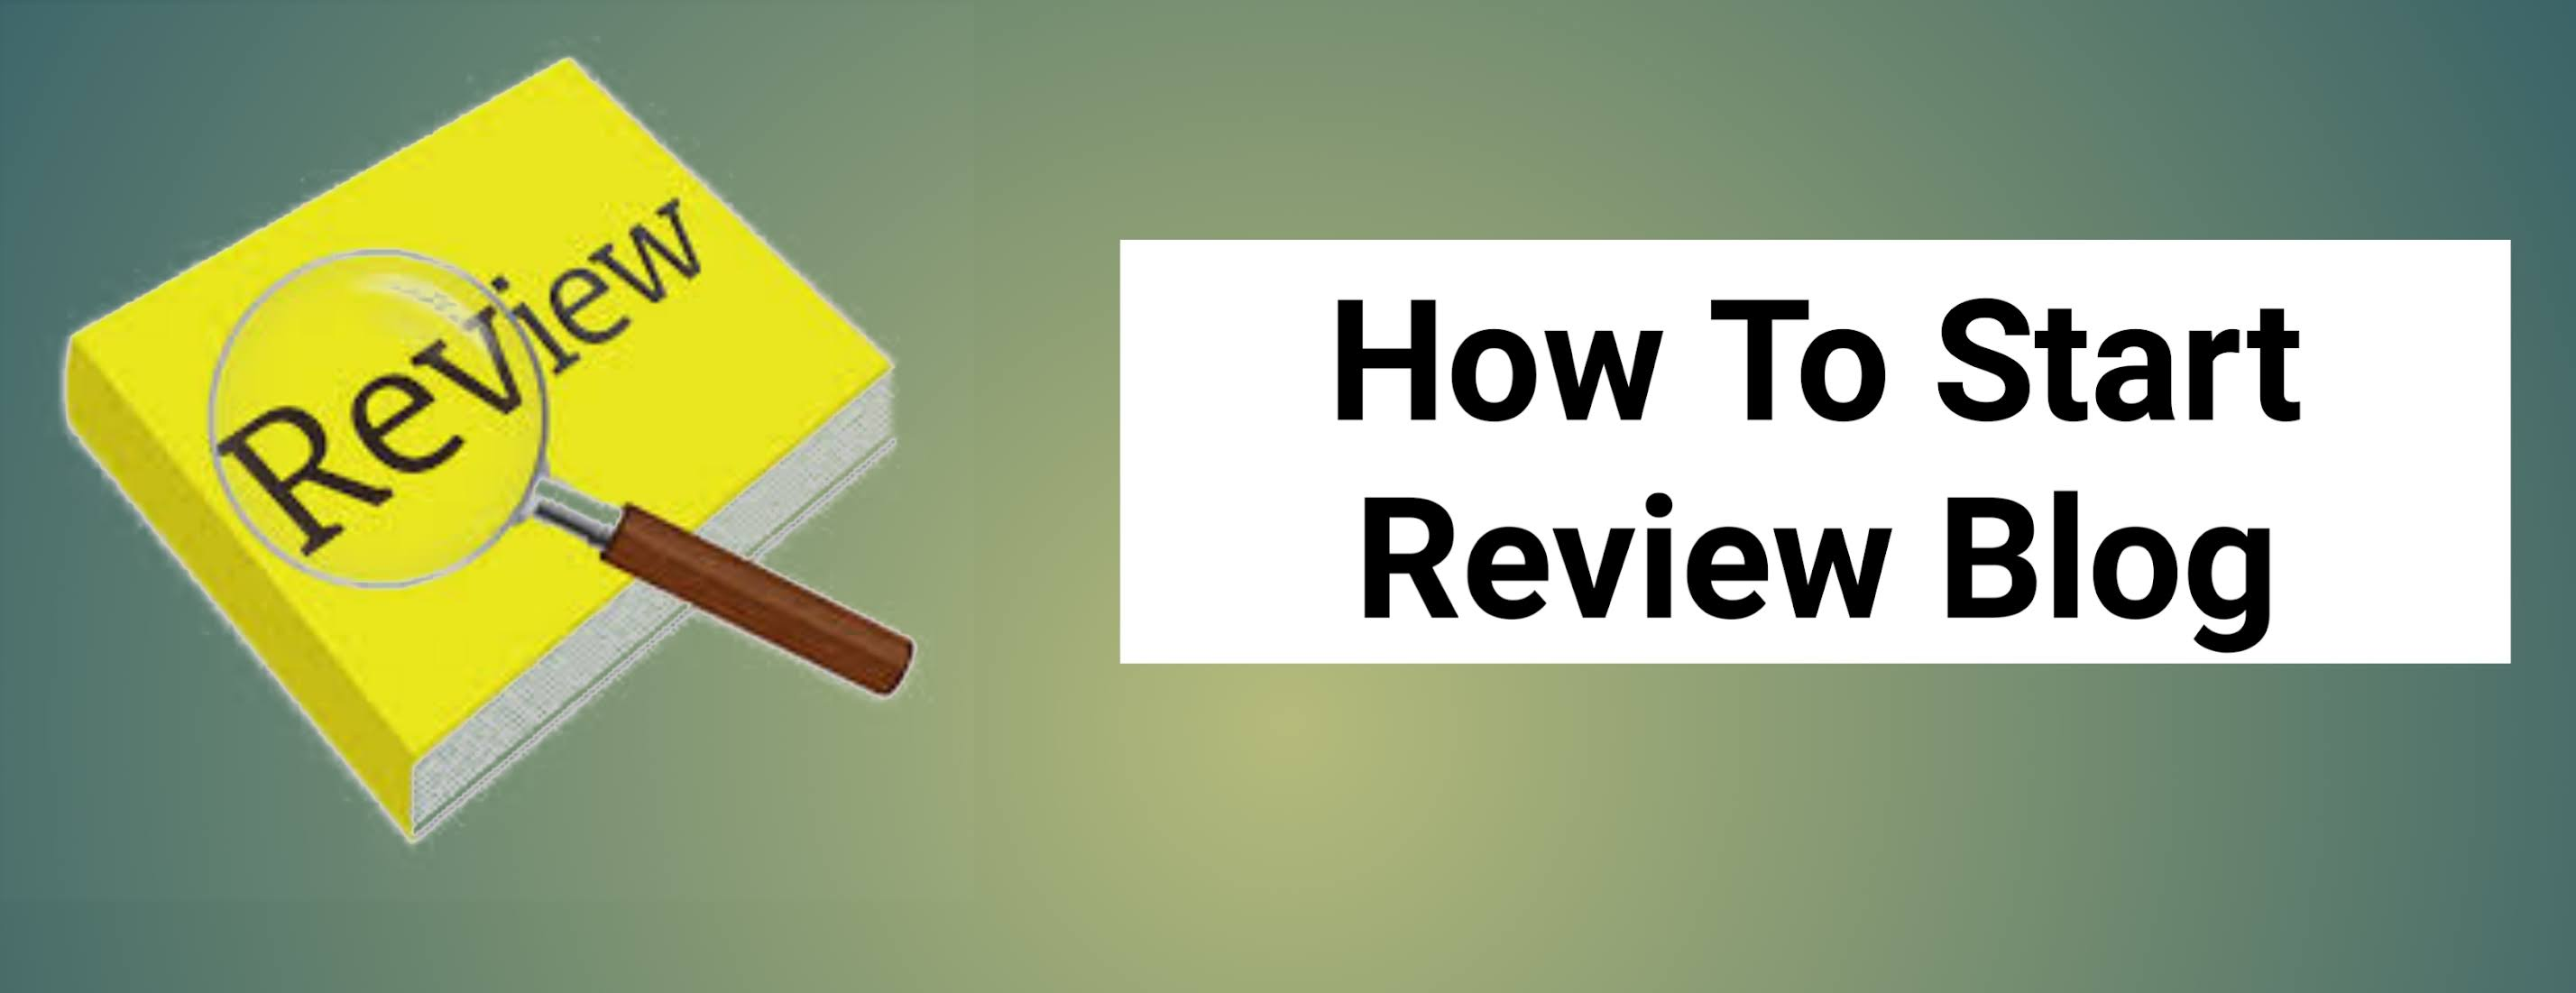 How To Start A Review Blog